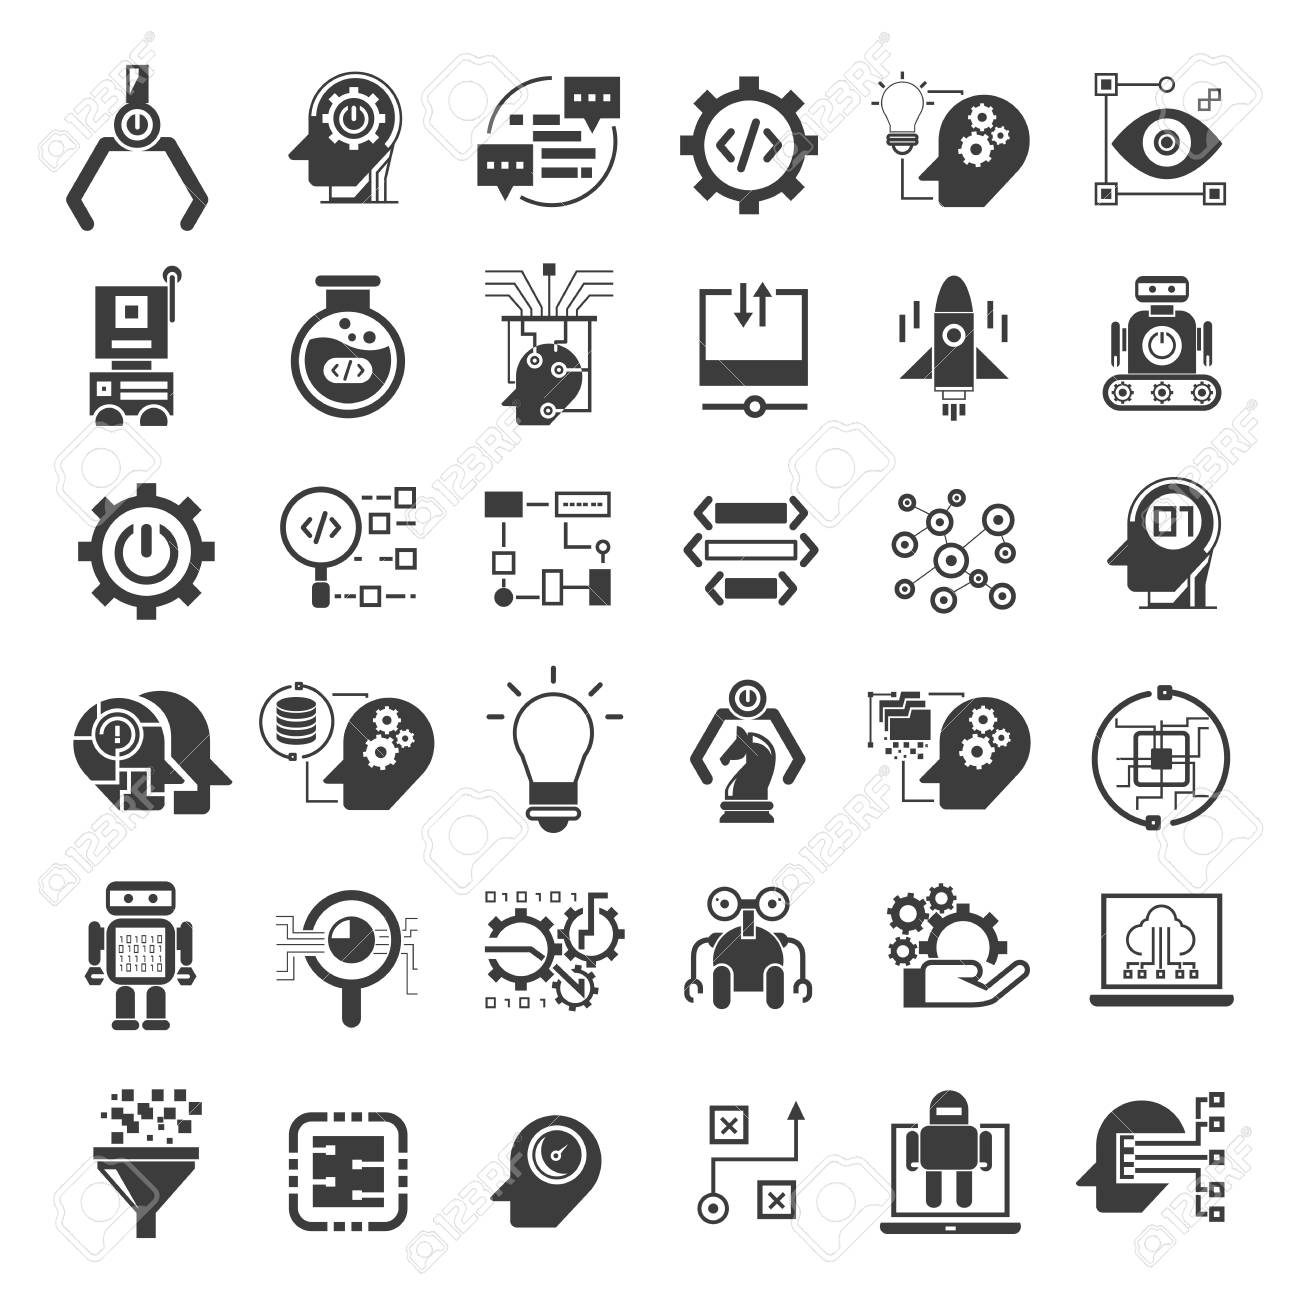 robotics and artificial intelligence icons - 89962948